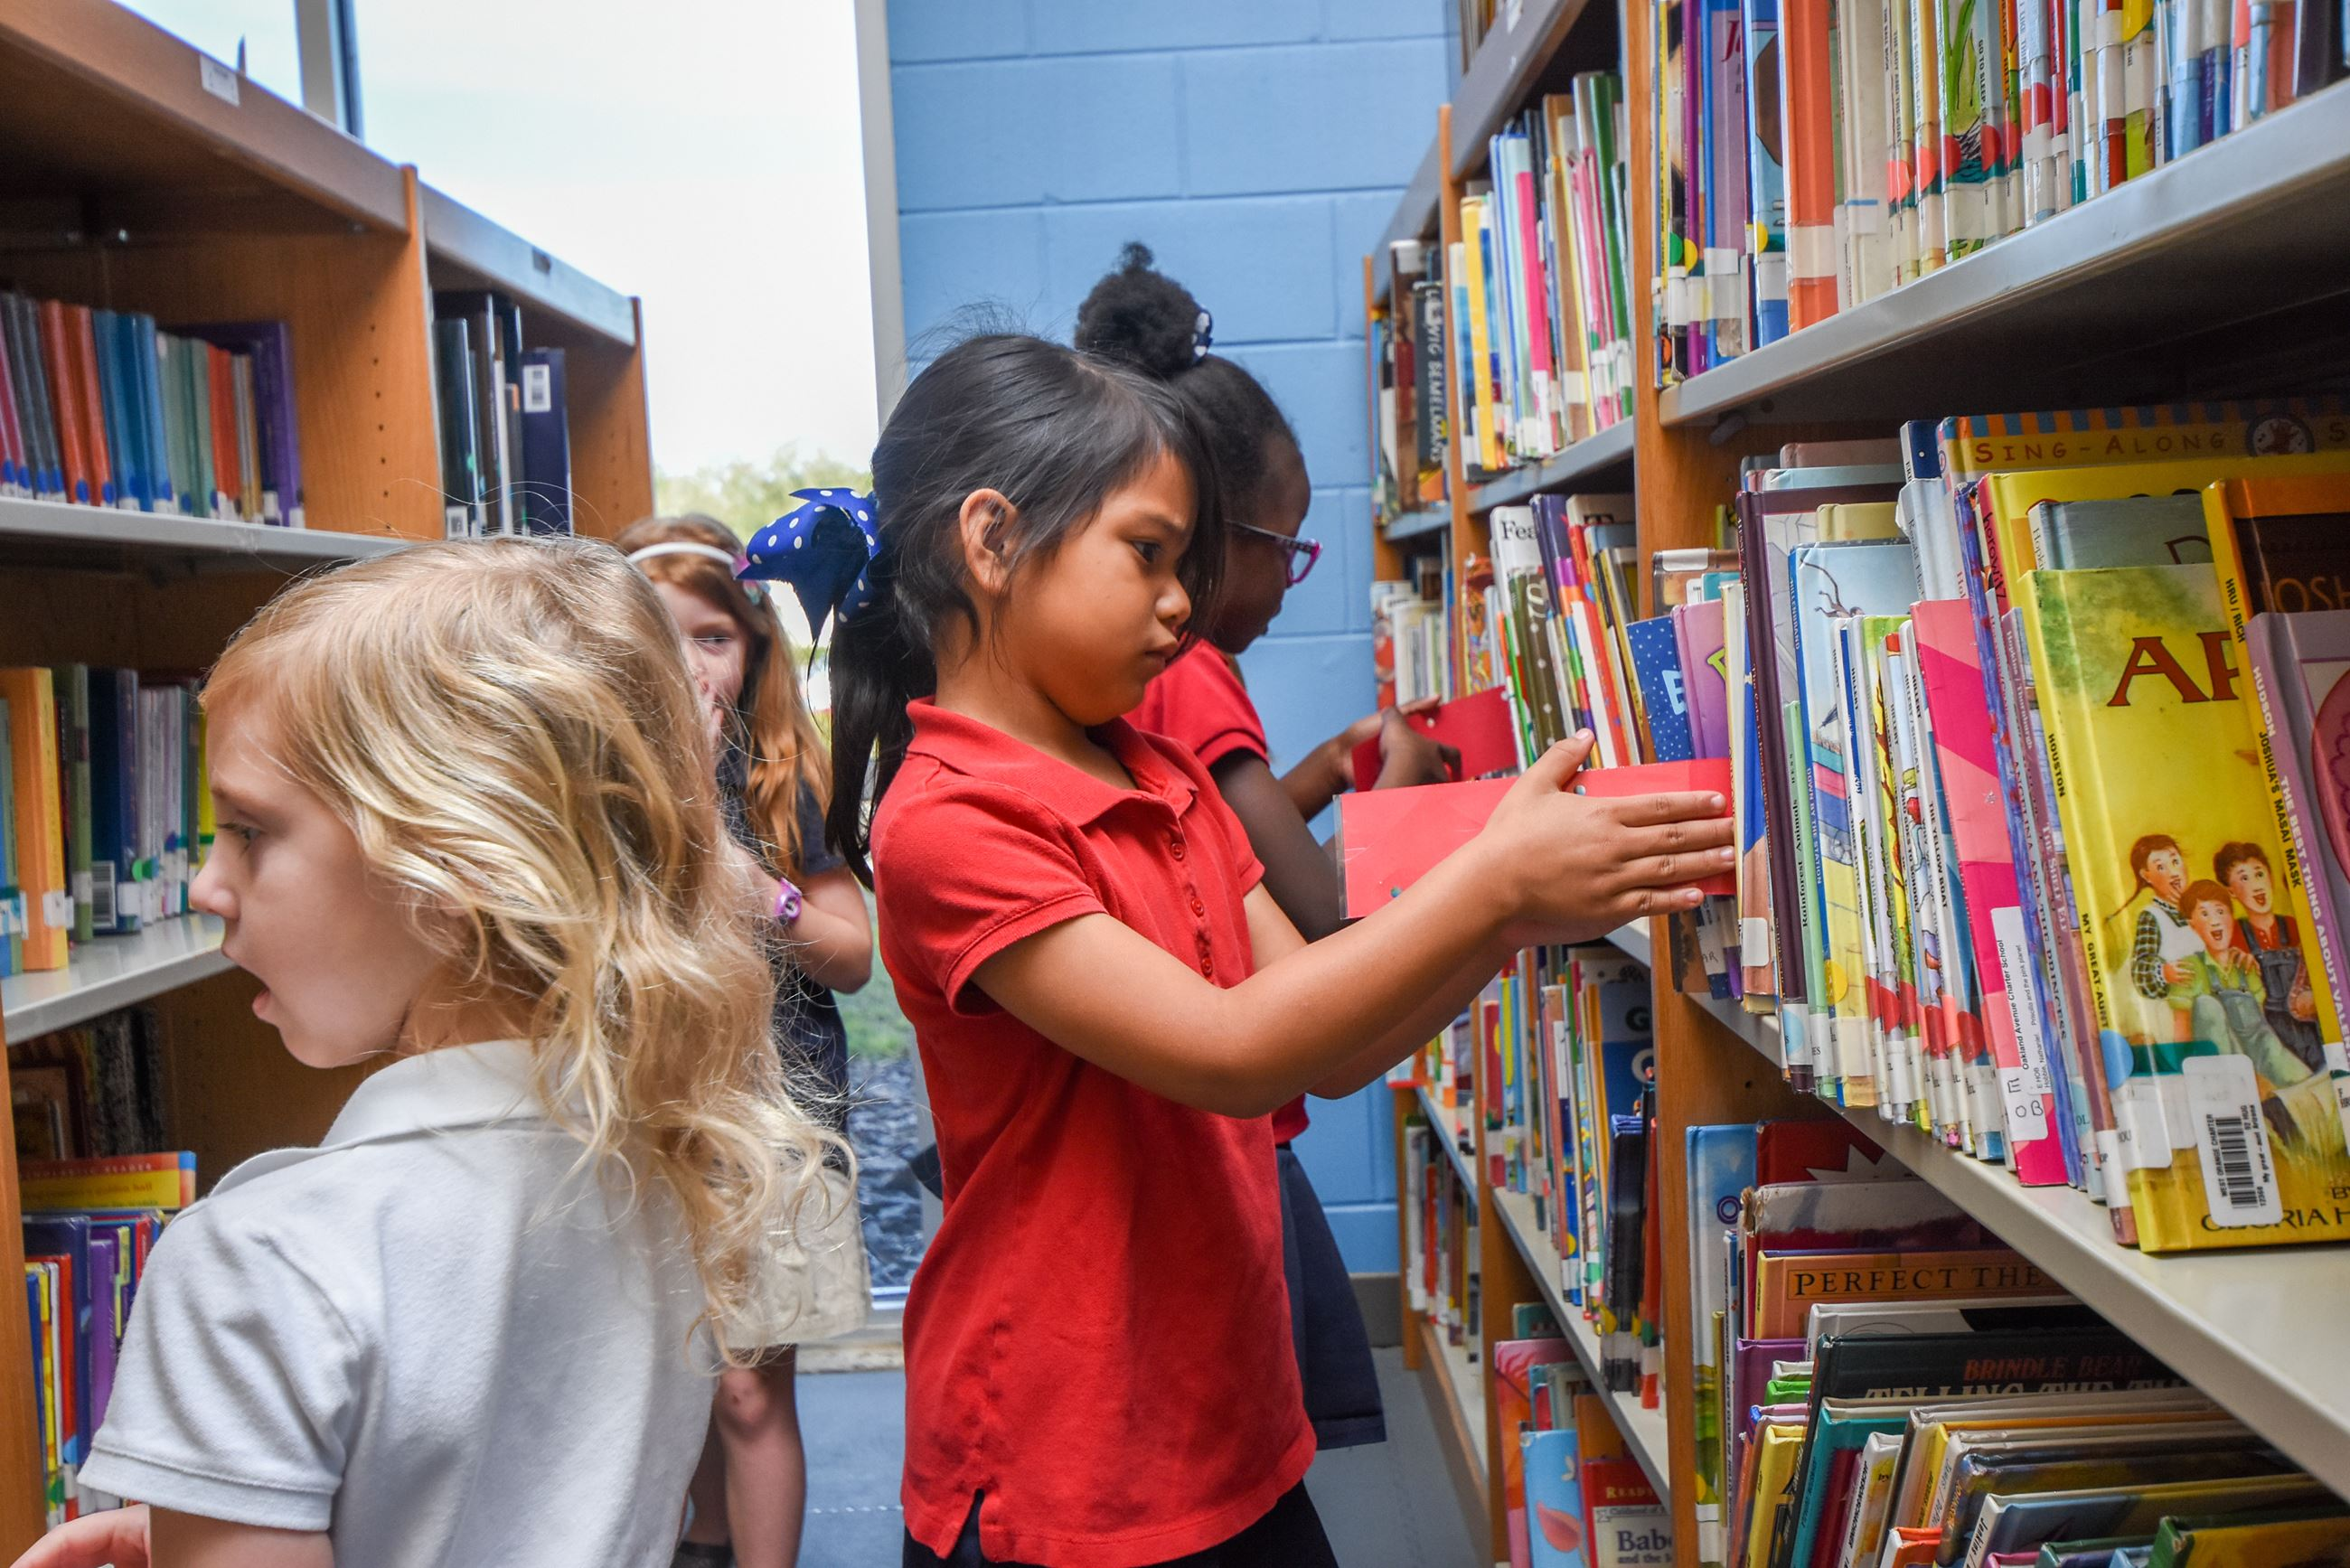 4 girls searching the bookshelves for the perfect library book.